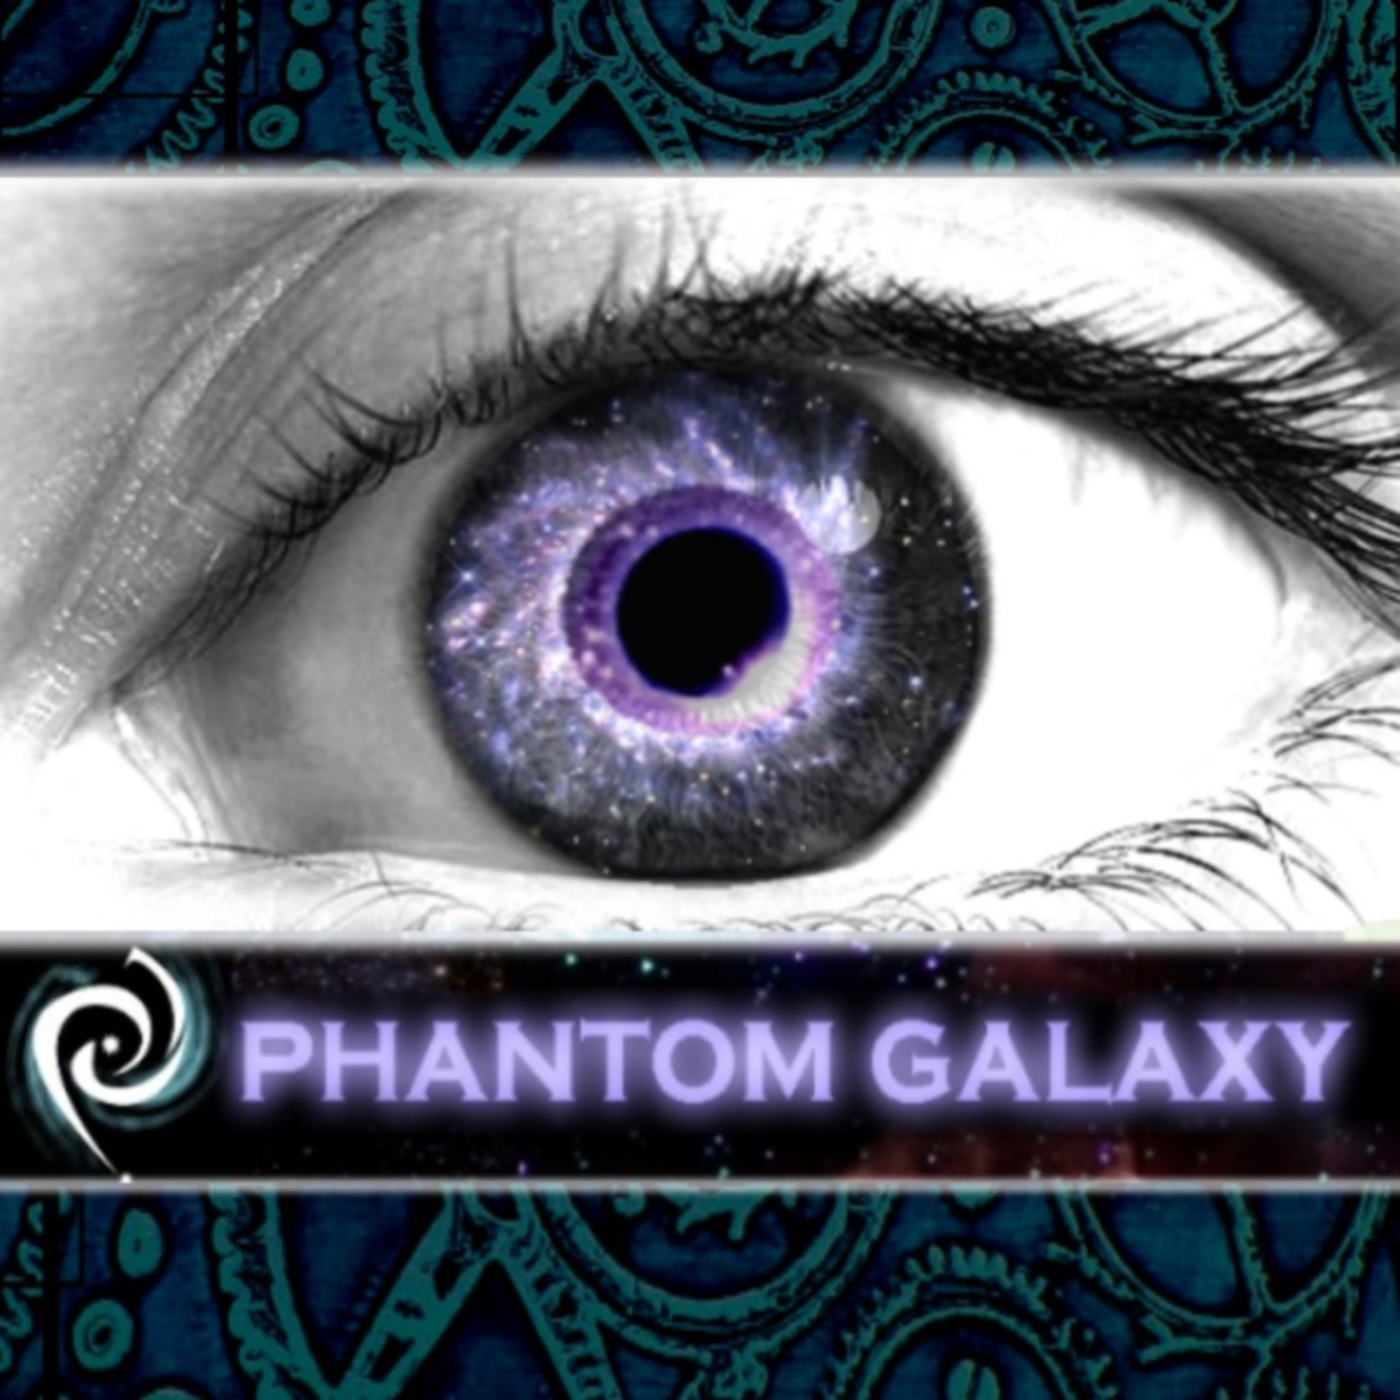 phantomgalaxy